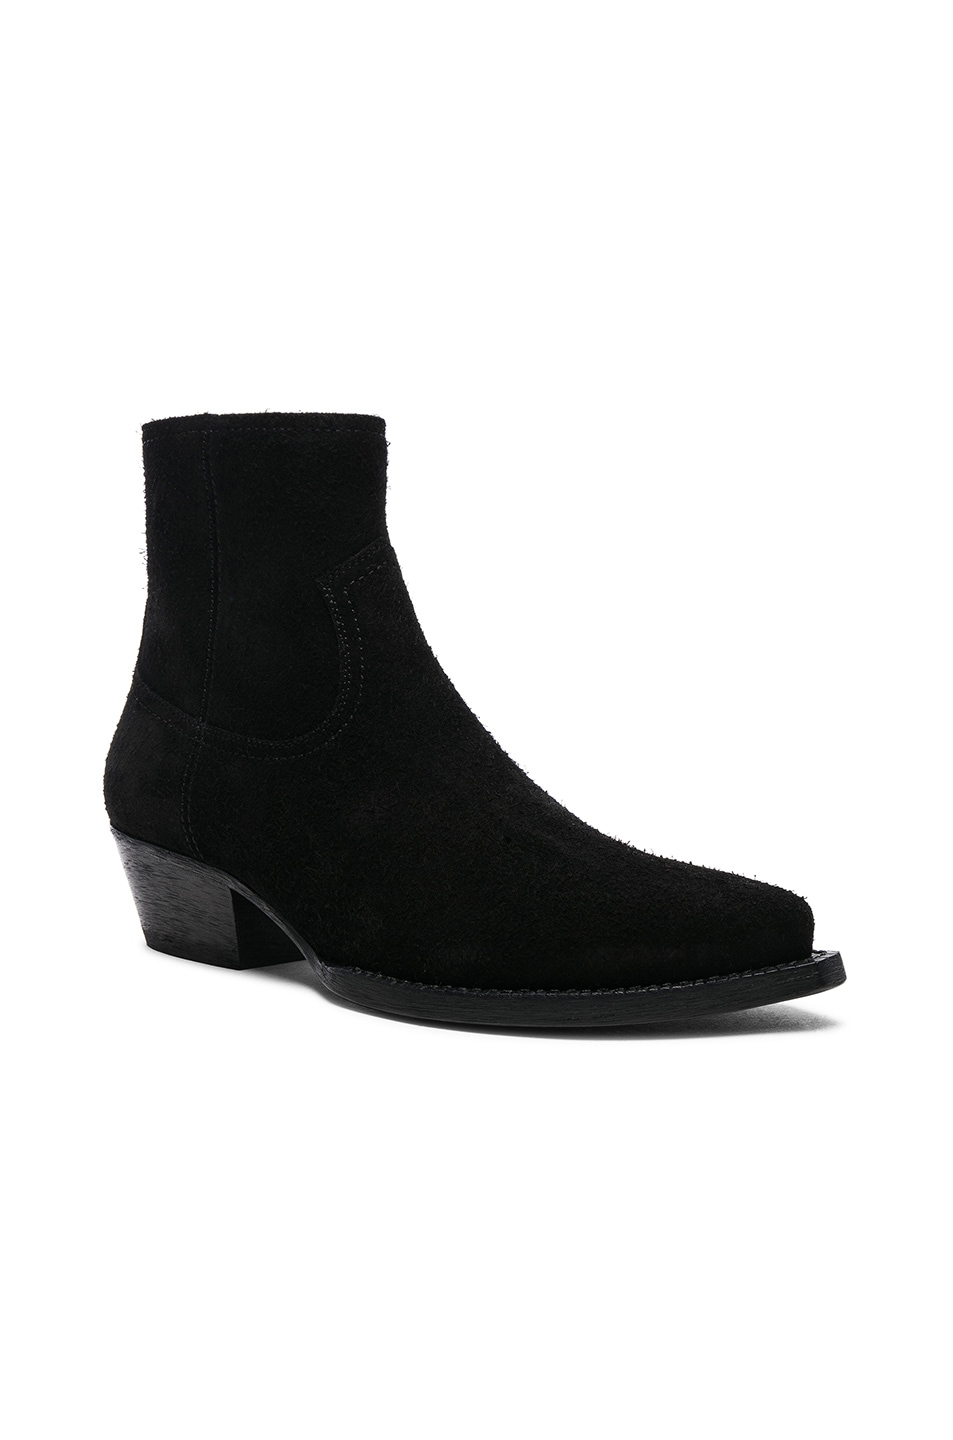 Image 2 of Saint Laurent Suede Lukas Western Boots in Black